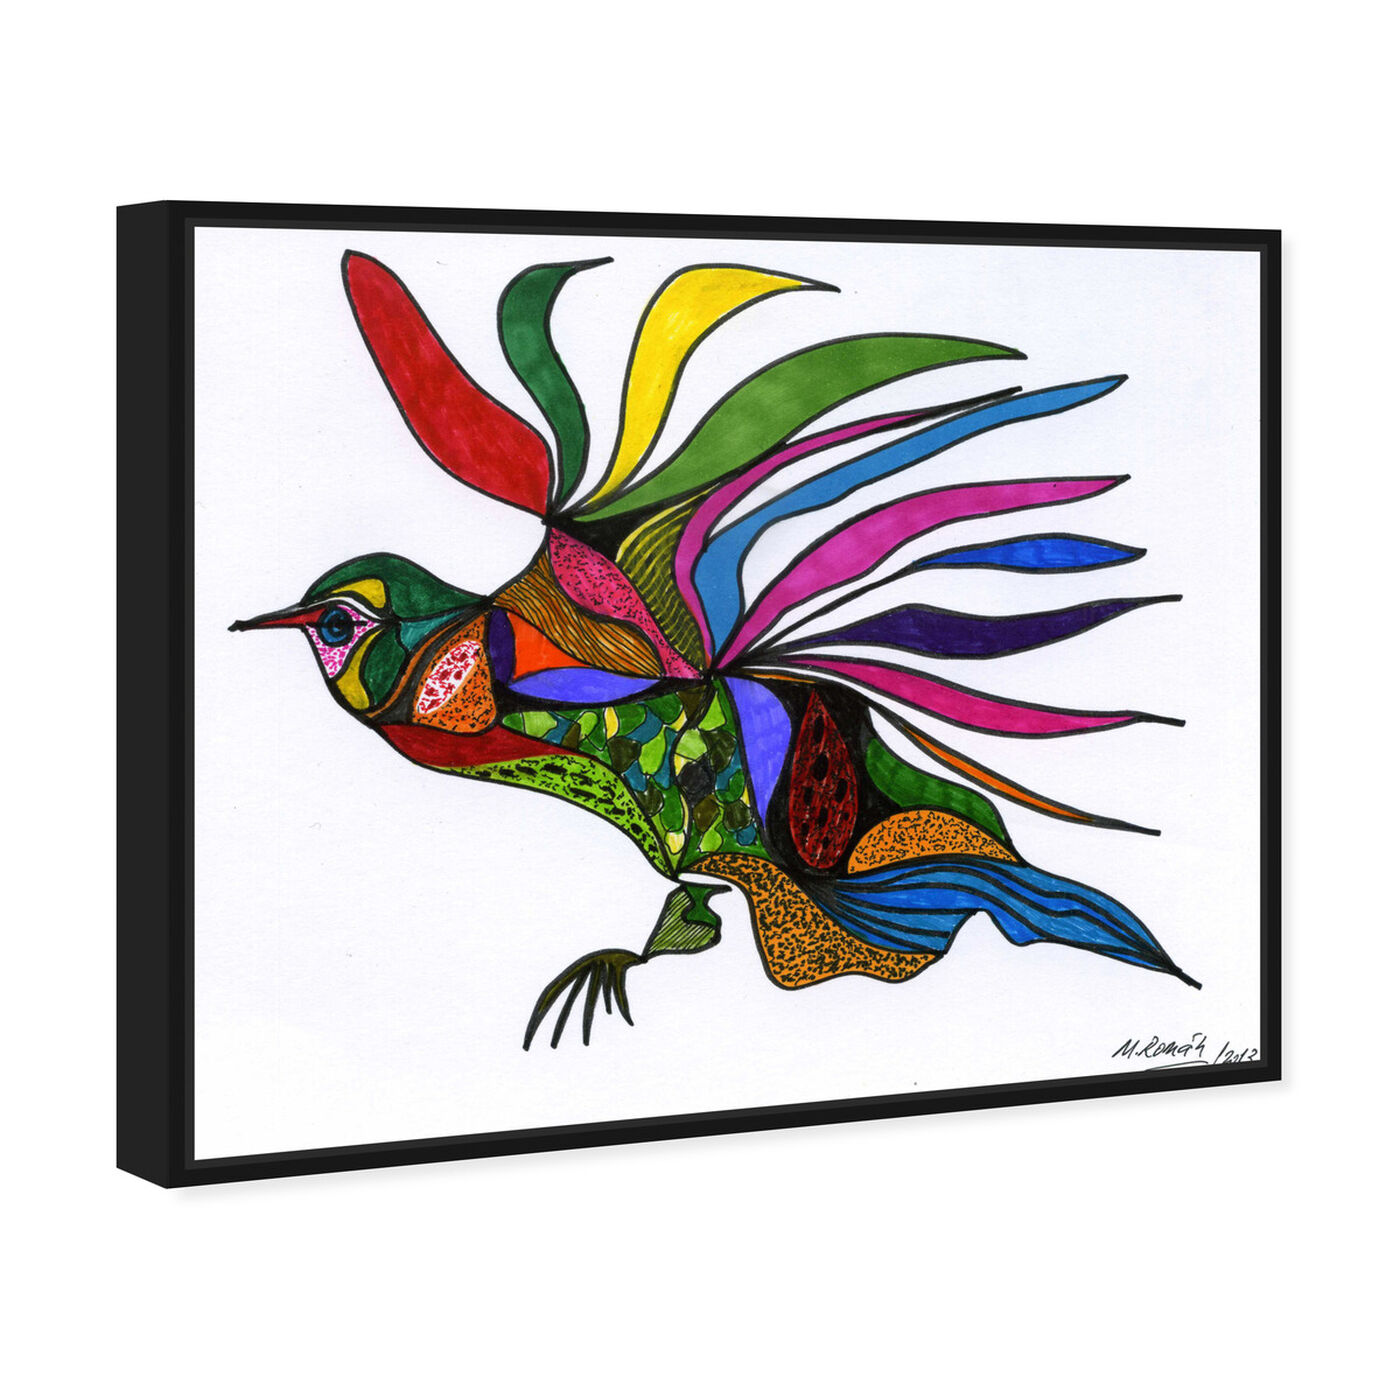 Angled view of Bird of Paradise featuring animals and birds art.